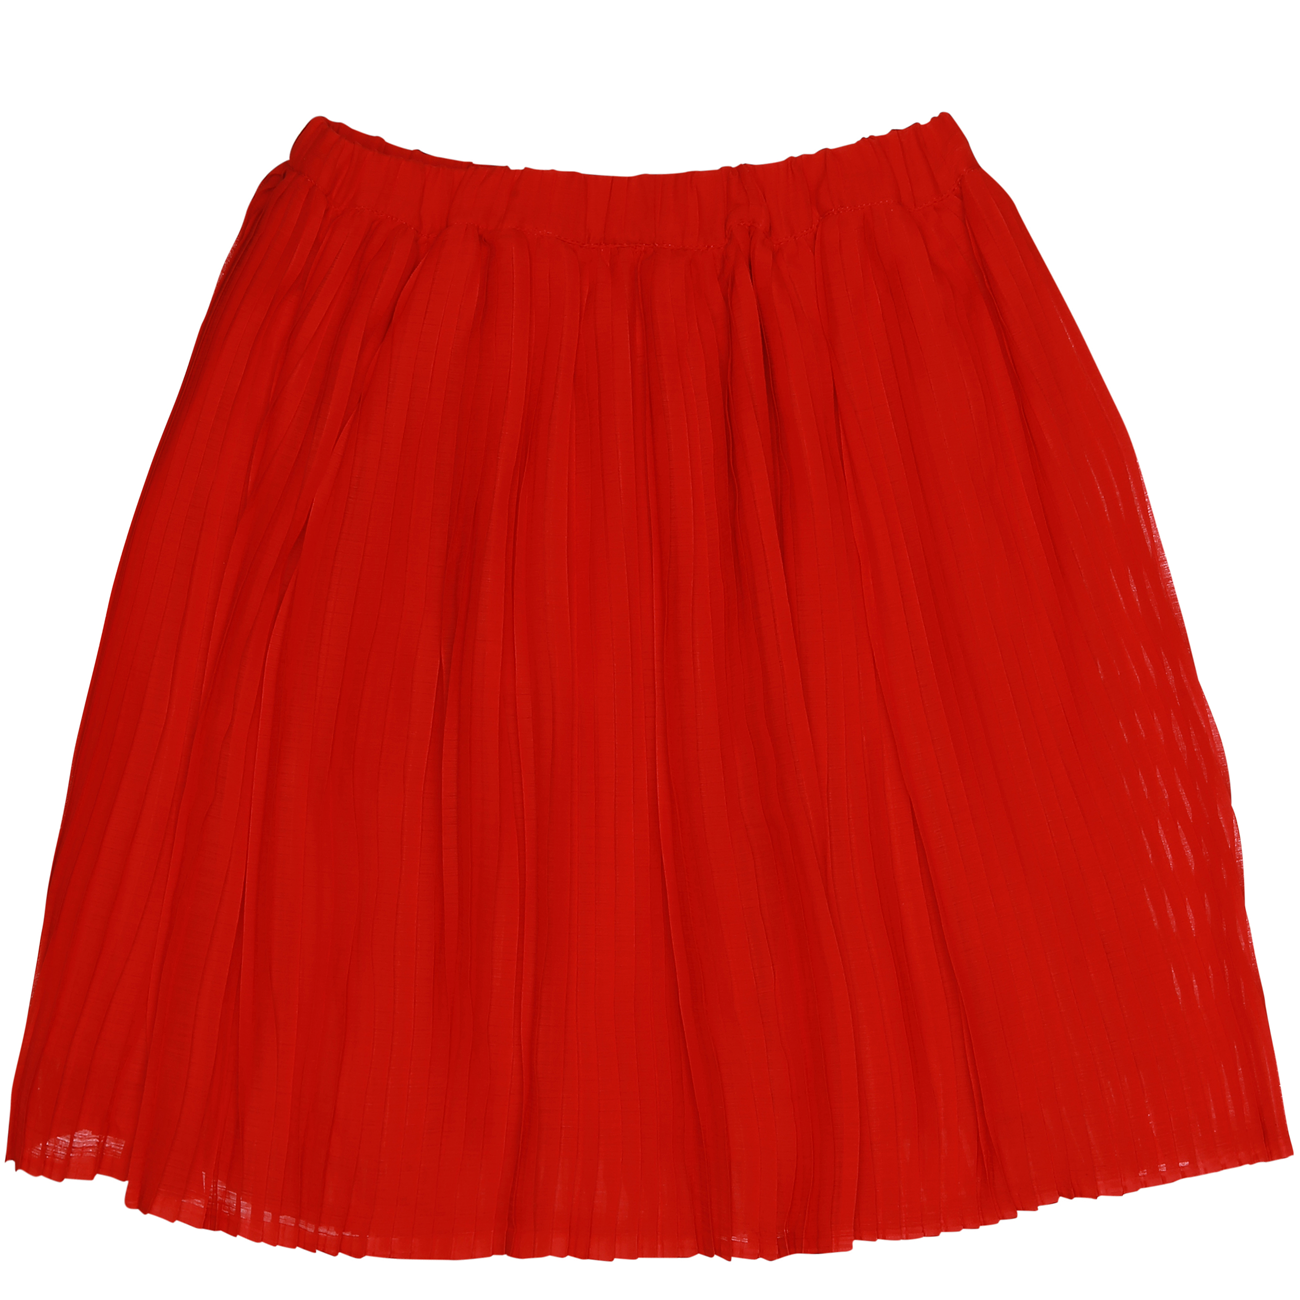 softgallery-soft-gallery-skirt-nederdel-flame-scarlet-red-roed-mandy